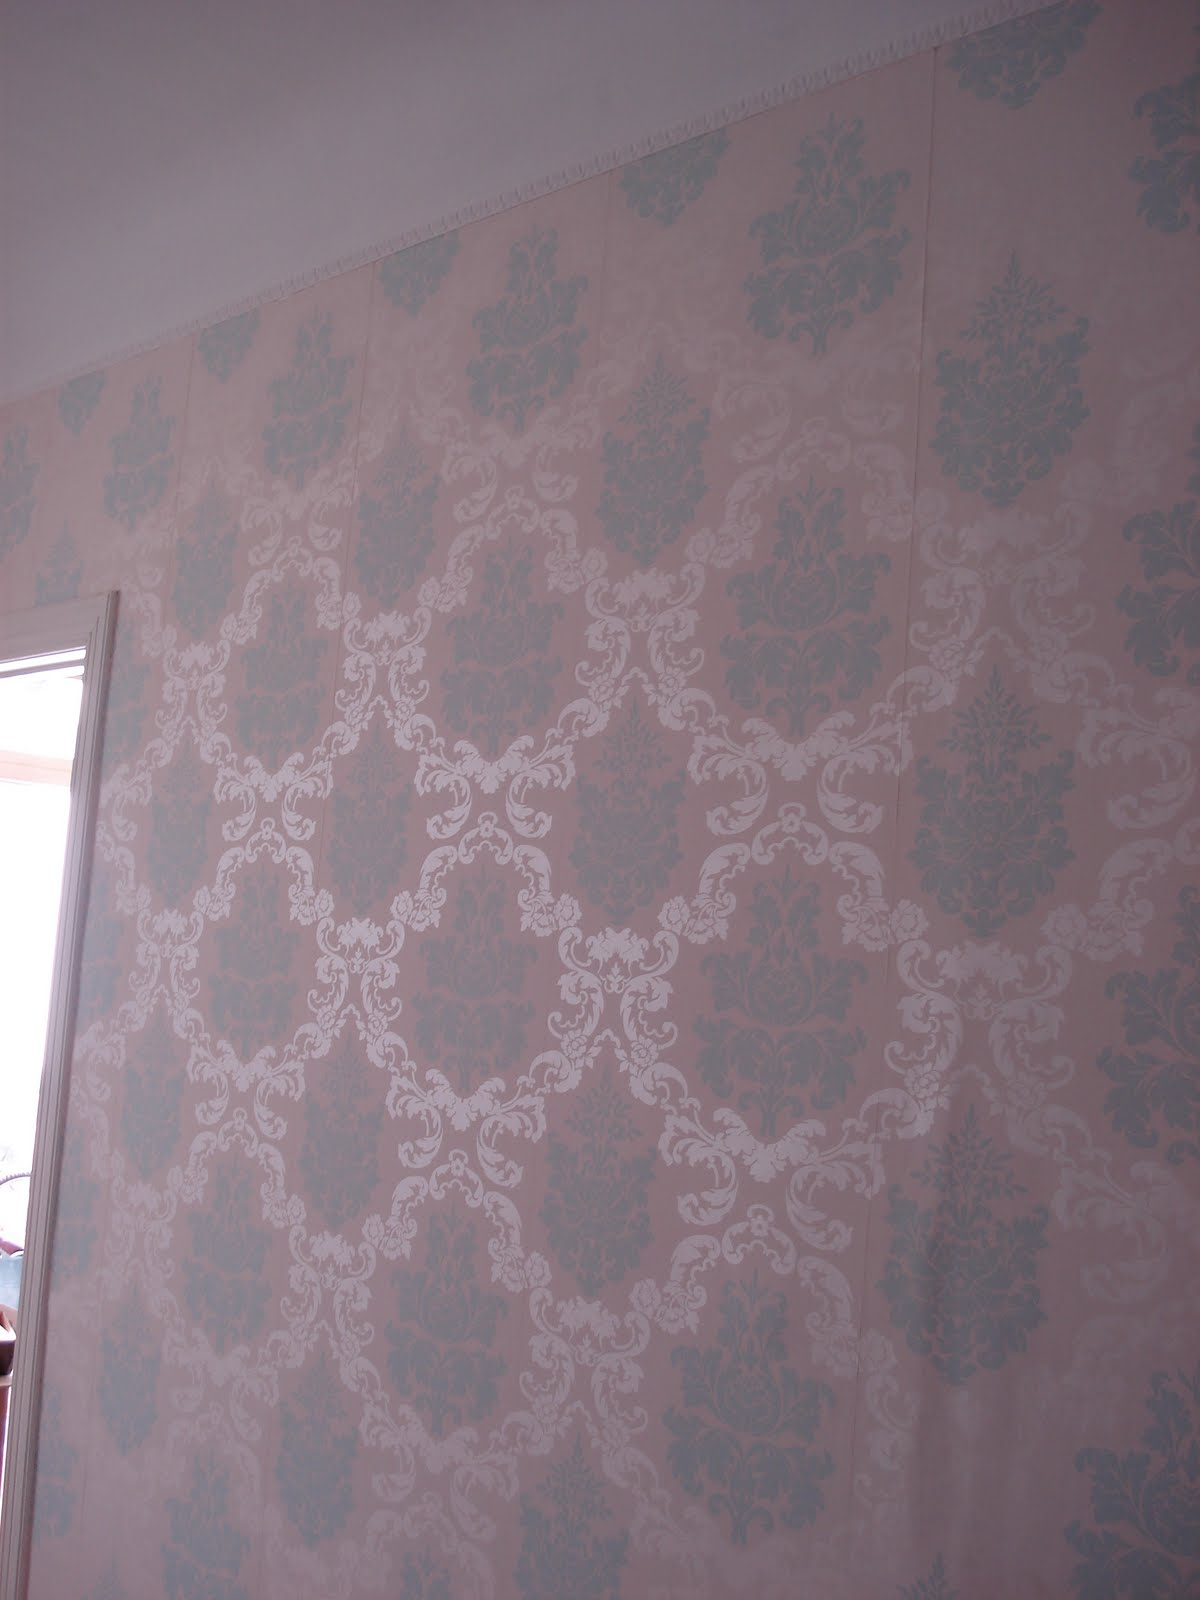 kane blog picz american blinds and wallpaper